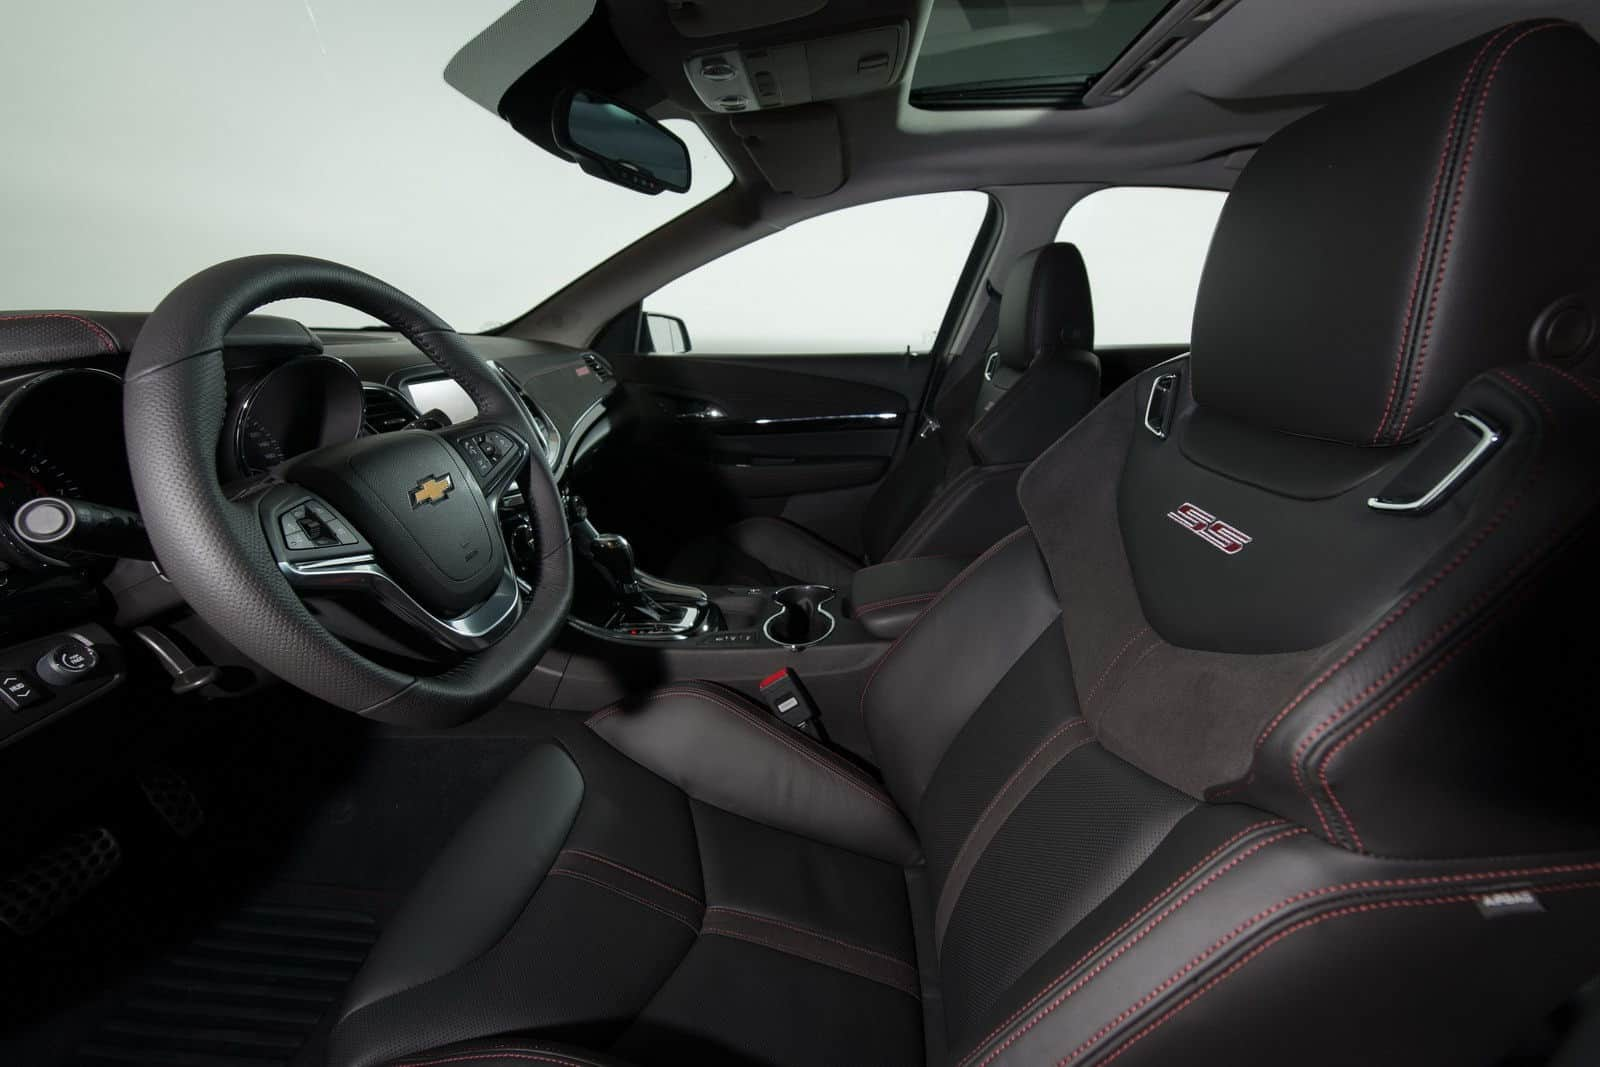 2014 Chevrolet SS dashboard